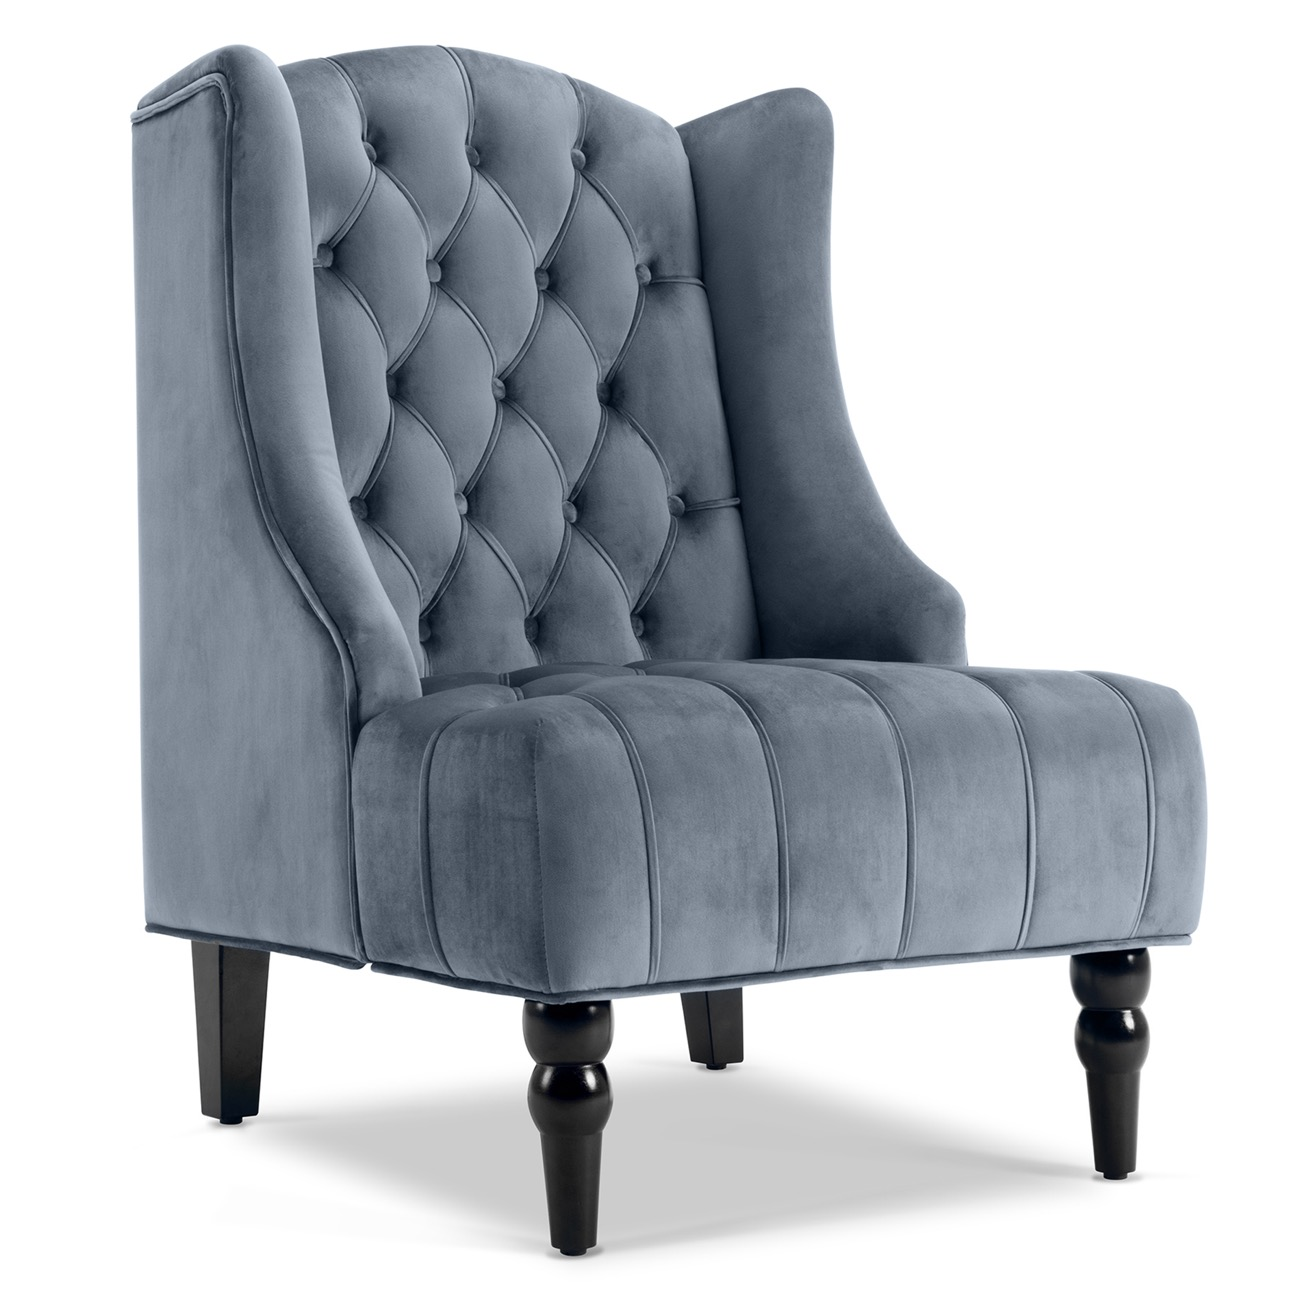 Details About Wingback Accent Chair Tall High Back Living Room Tufted  Nailhead   Gray / Beige